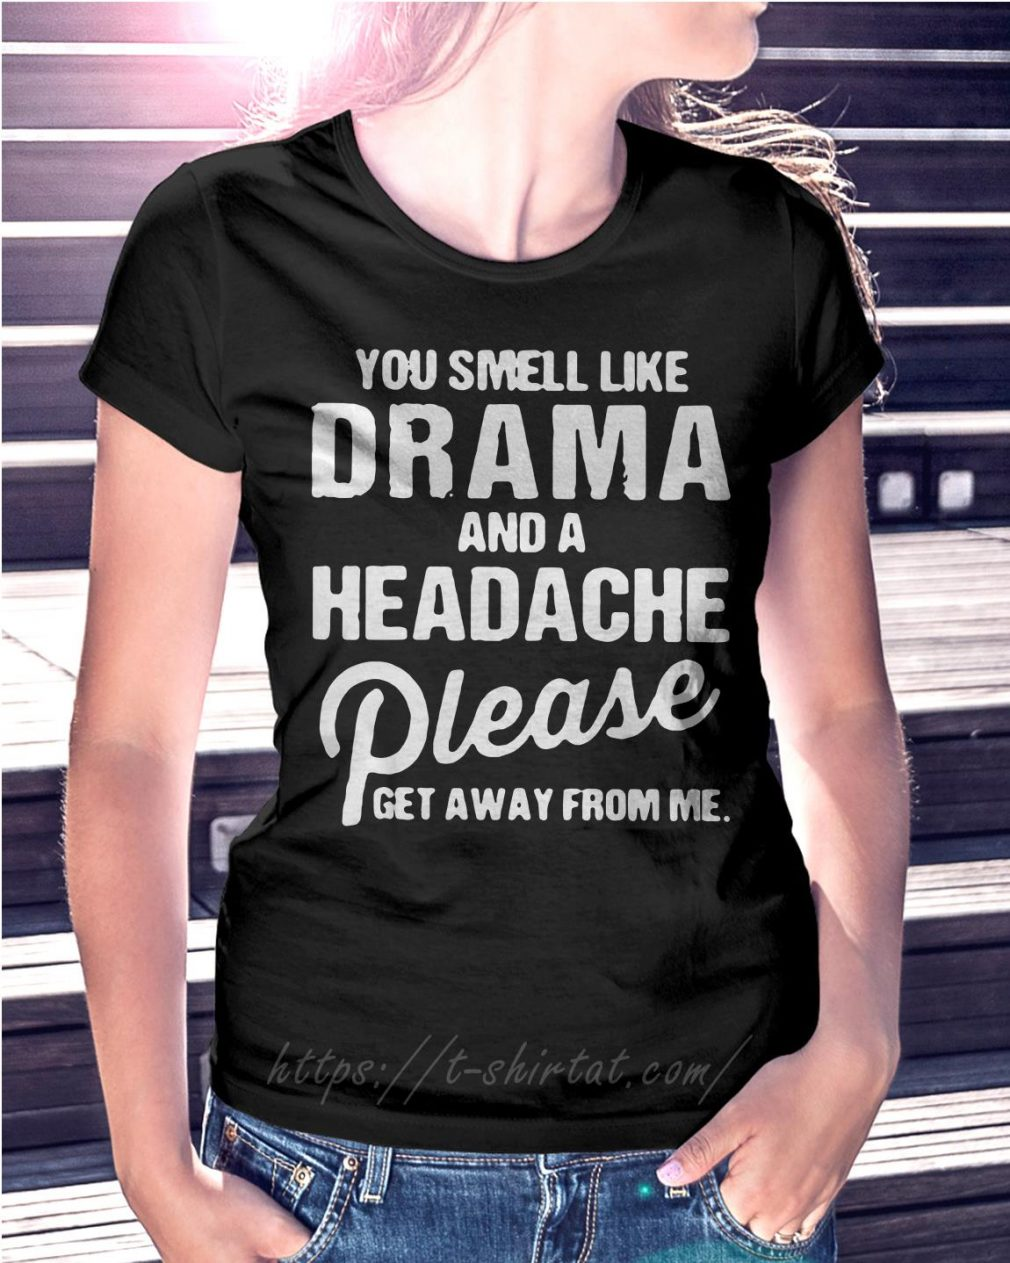 You smell like drama and a headache please get away from me